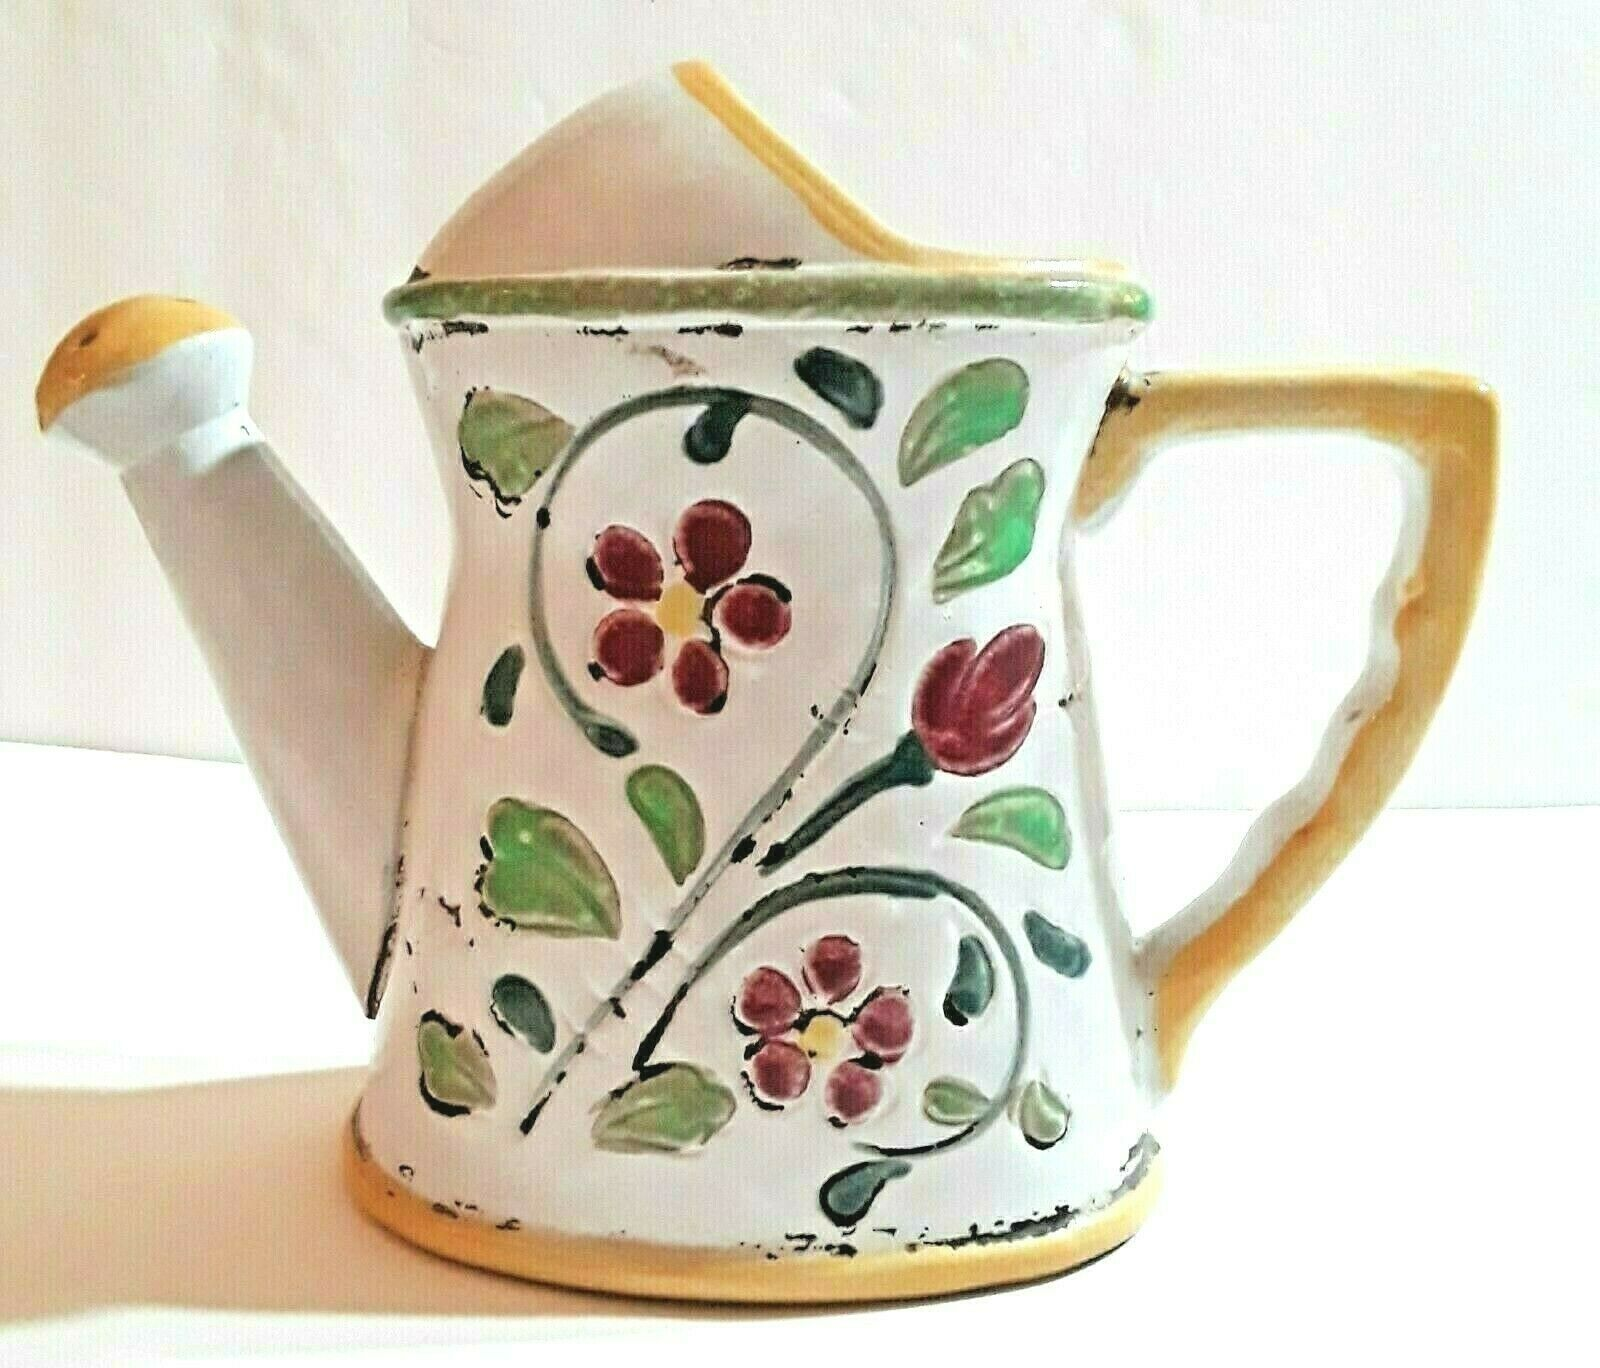 Ceramic Stoneware Hand Painted Watering Can Planter Floral Design 6-1/4